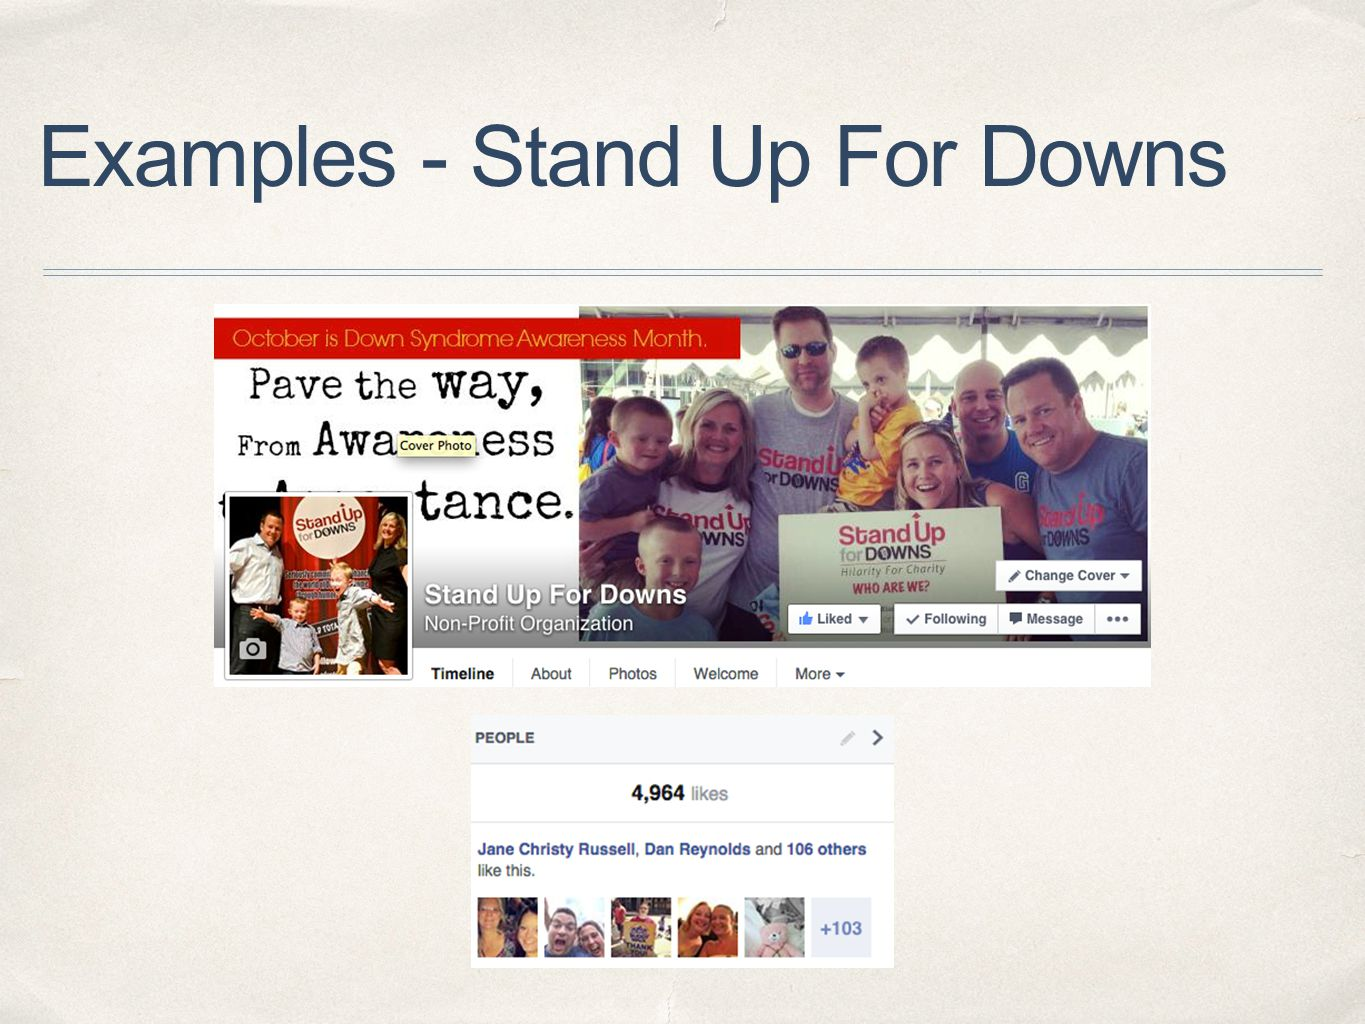 Examples - Stand Up For Downs